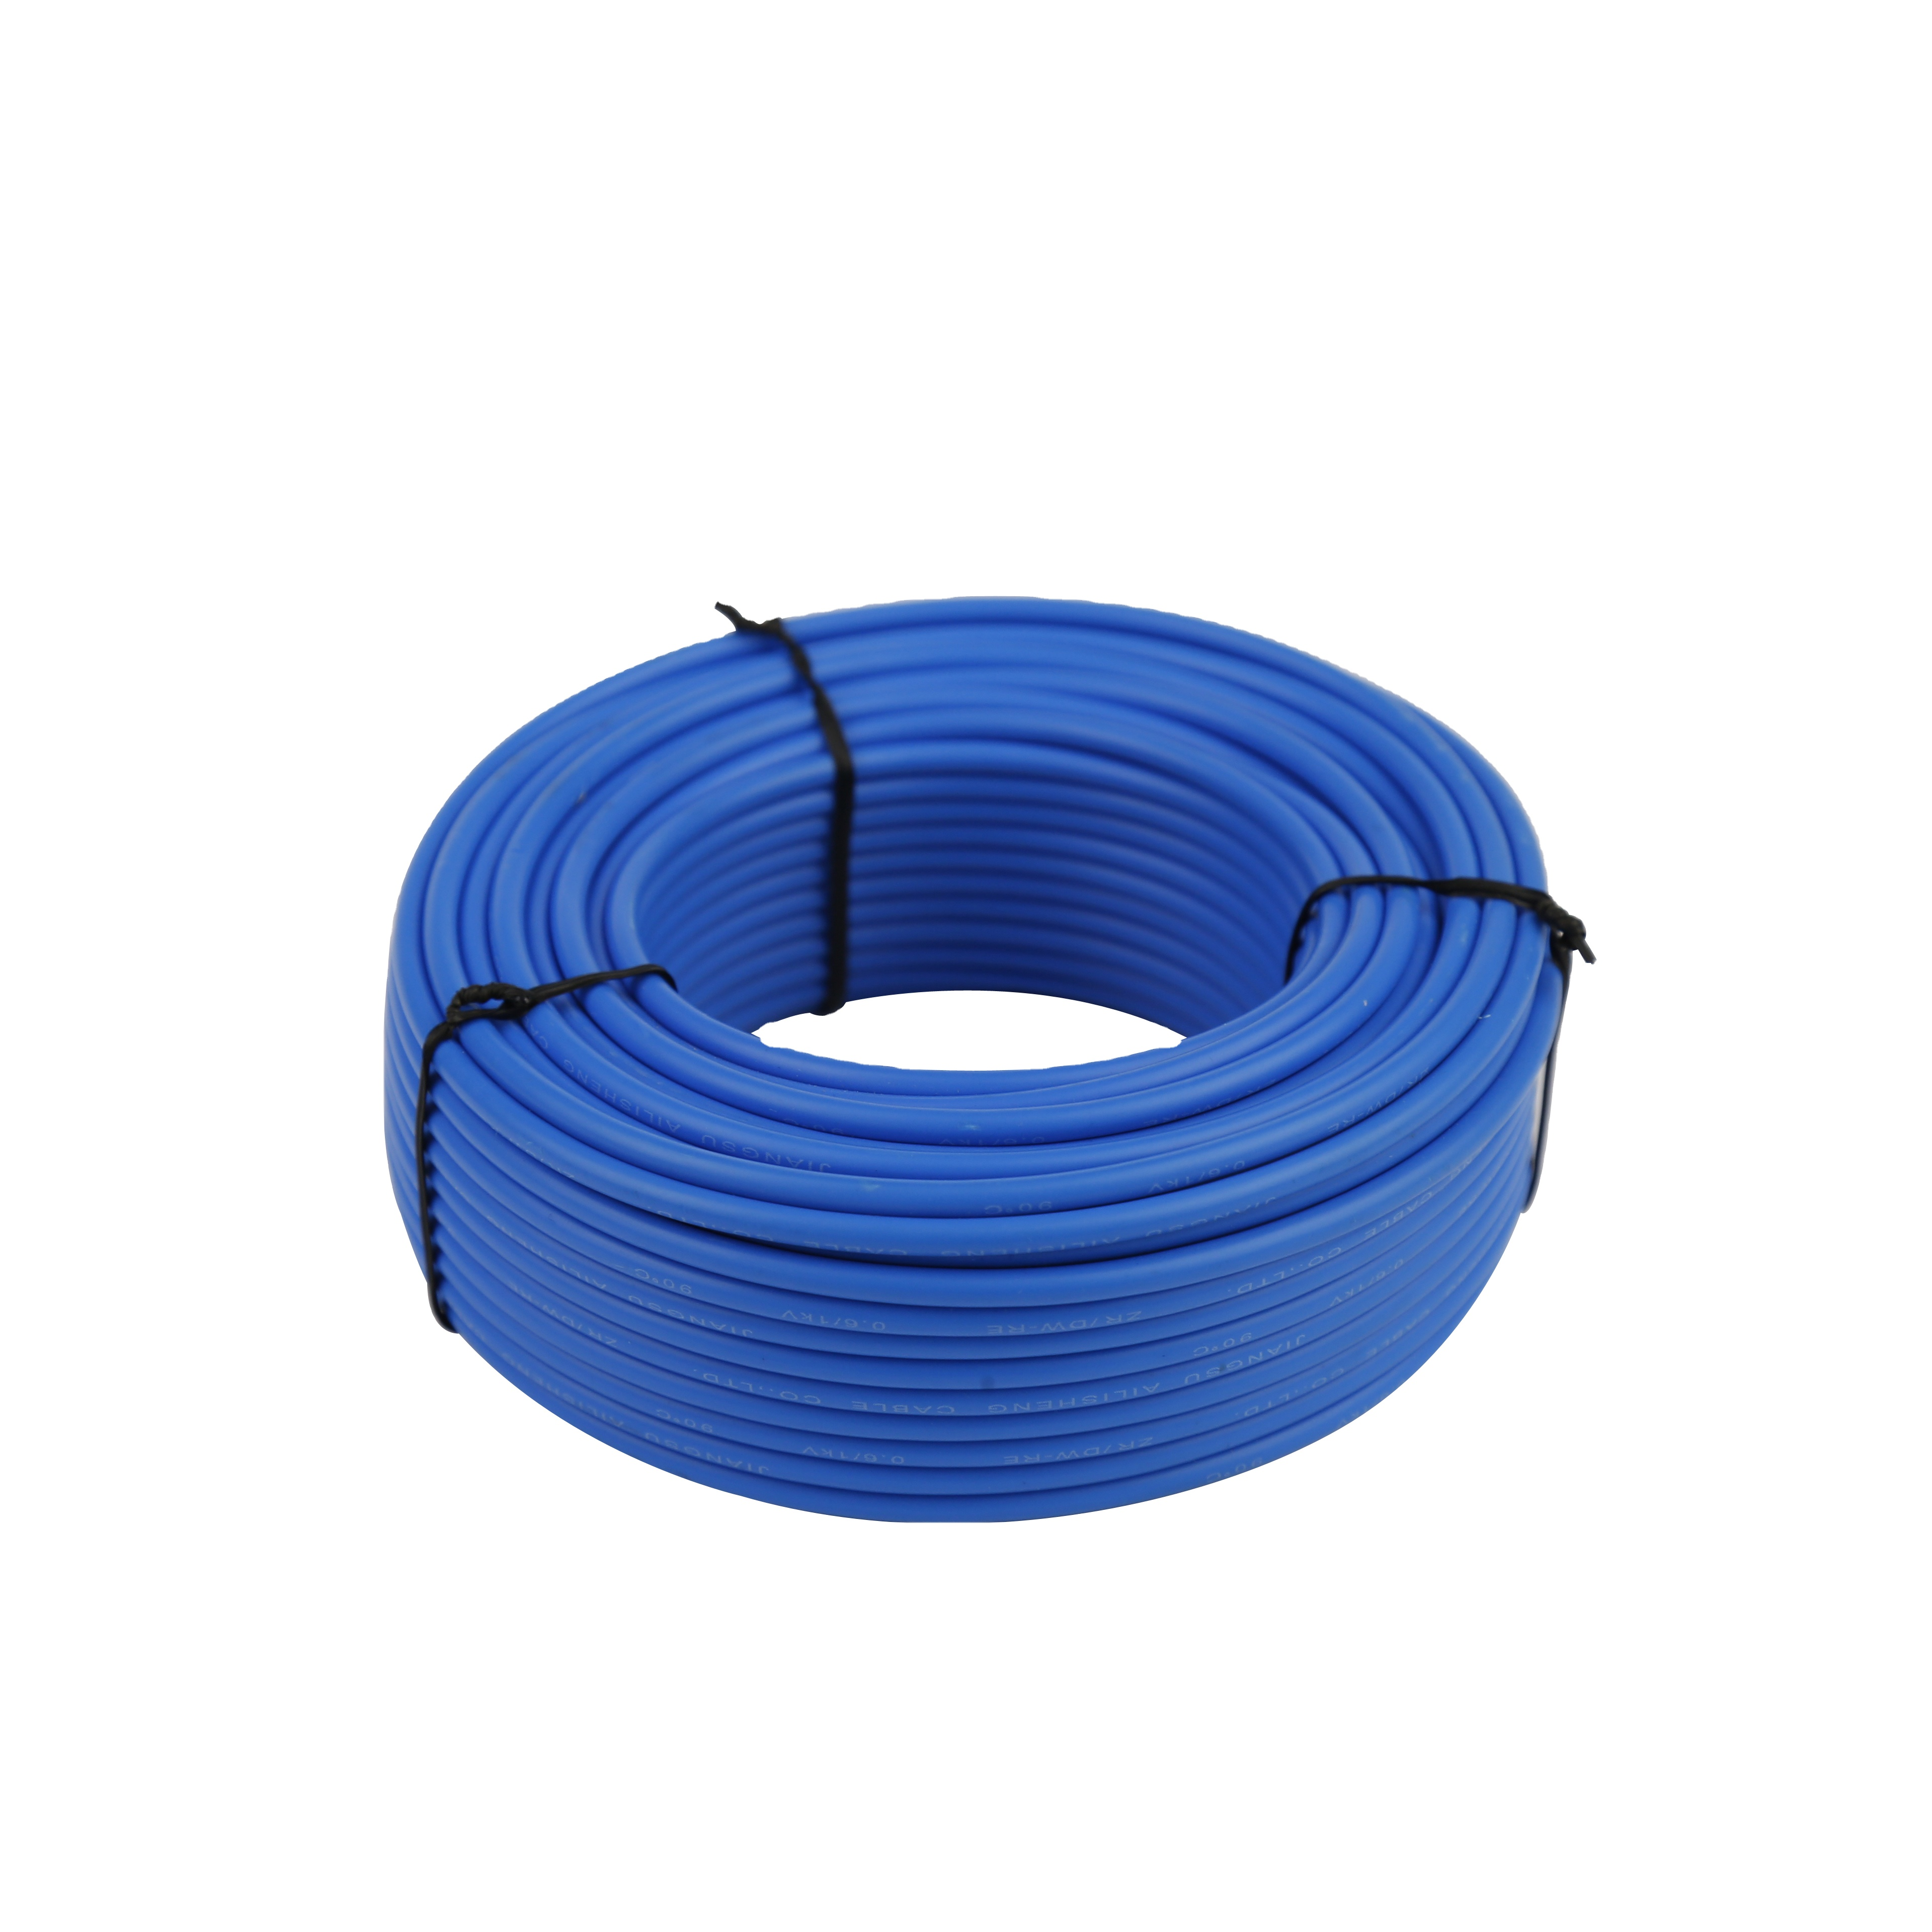 Blue PVC Cable Electronic Appliances Internerl Wiring Flexible Stranded 80℃//300V